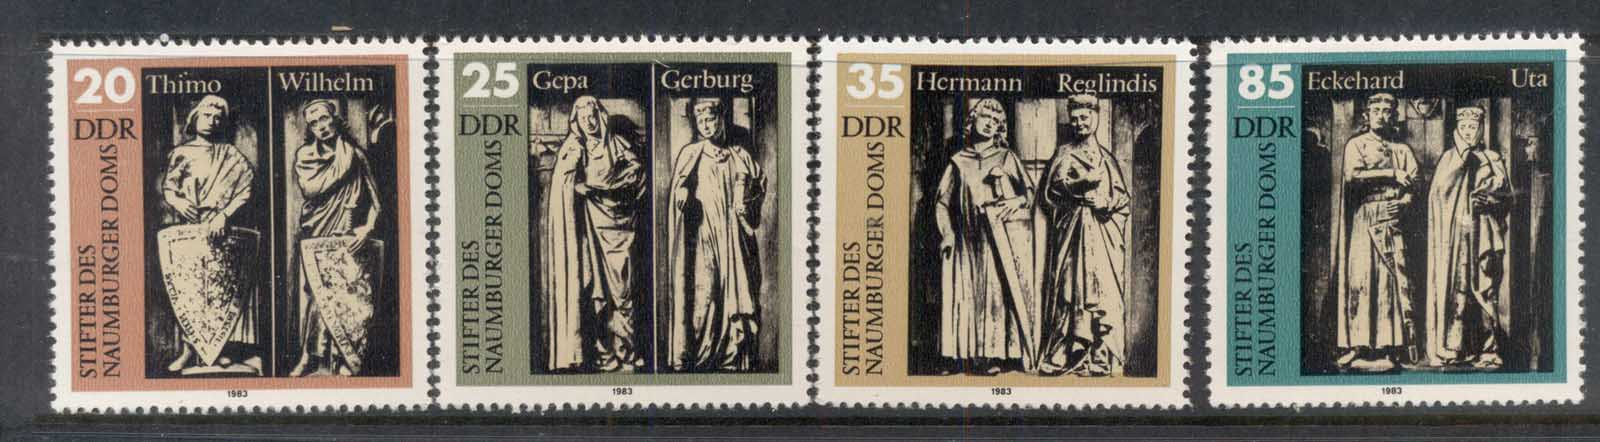 Germany DDR 1983 Nurnberg Cathederal Statues MUH